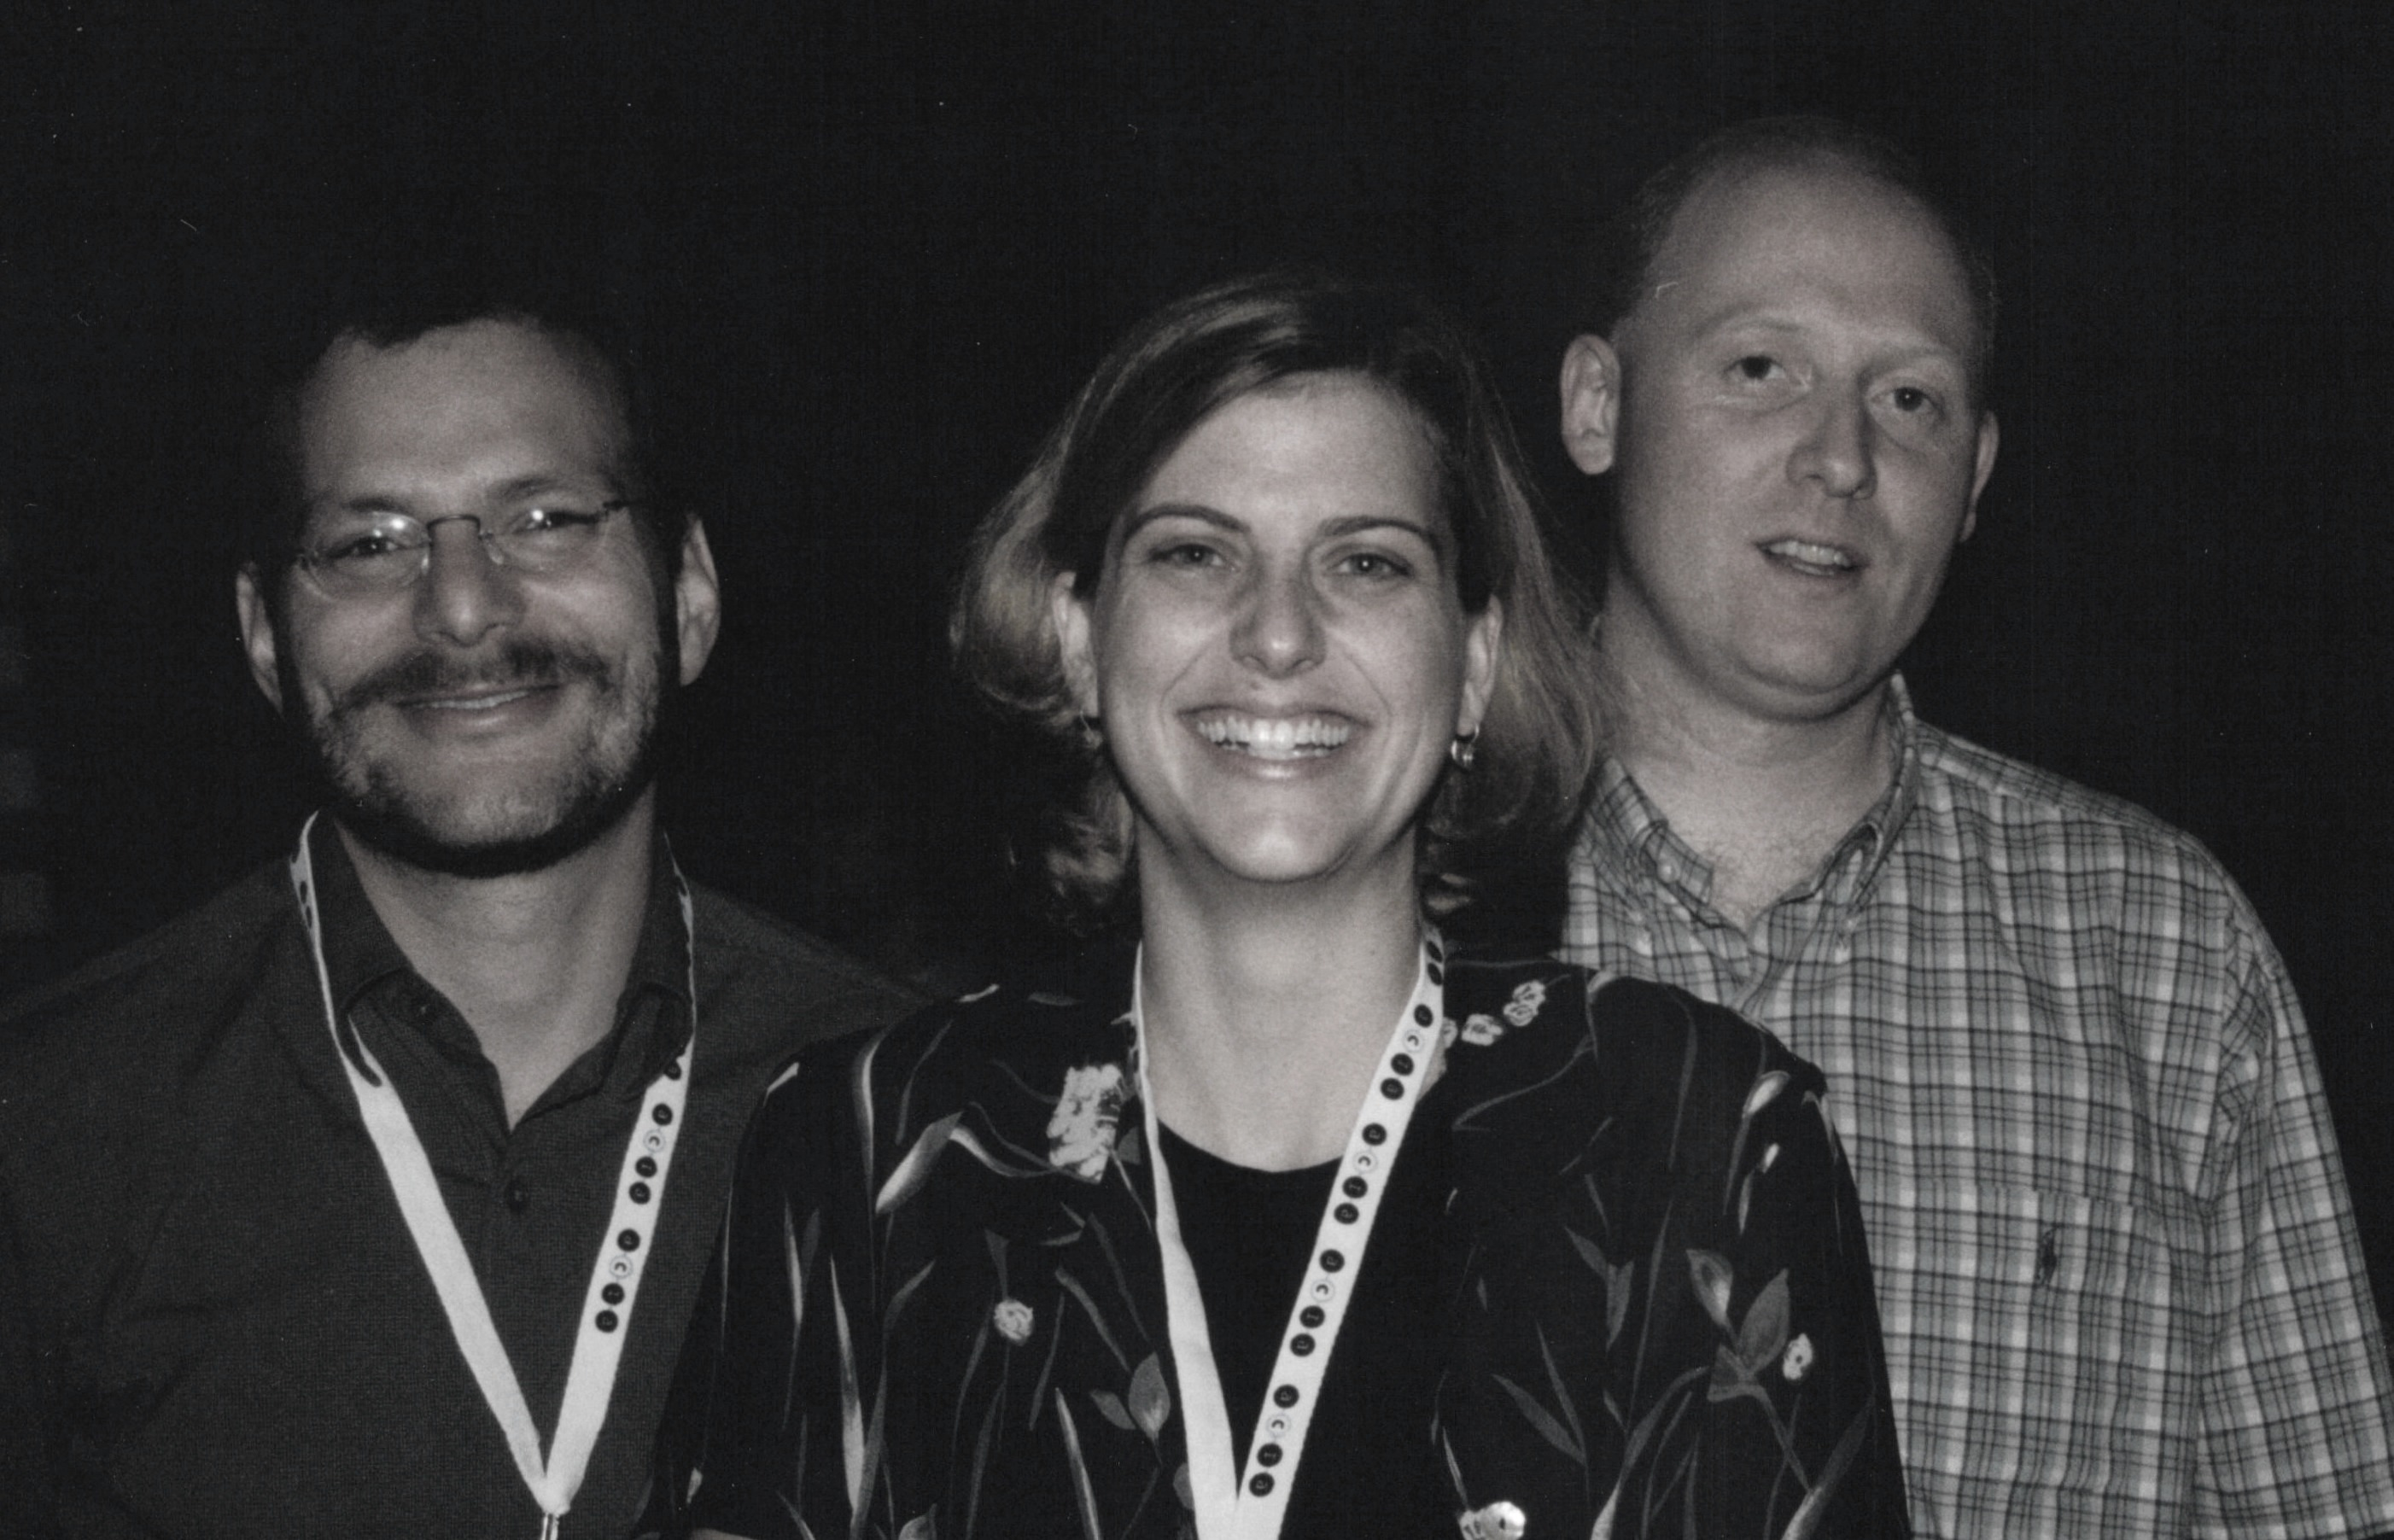 Lou Rosenfeld (left) and Peter Morville (right) in 2000, with Samantha Bailey, then Vice President of Consulting Operations at Argus Associates. Photo courtesy of P. Morville.